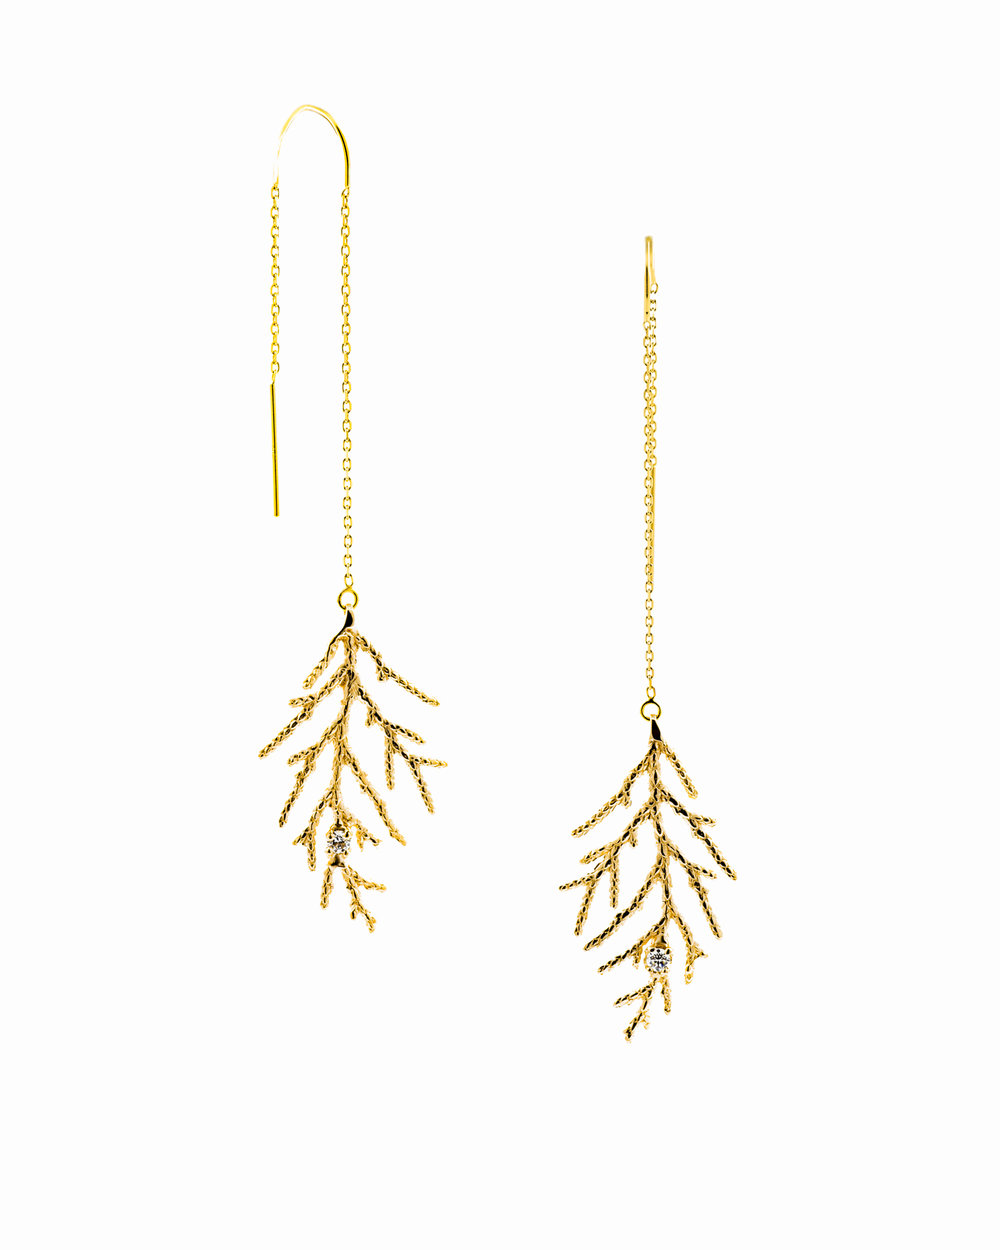 Winter Earrings; Yellow gold, white diamonds.